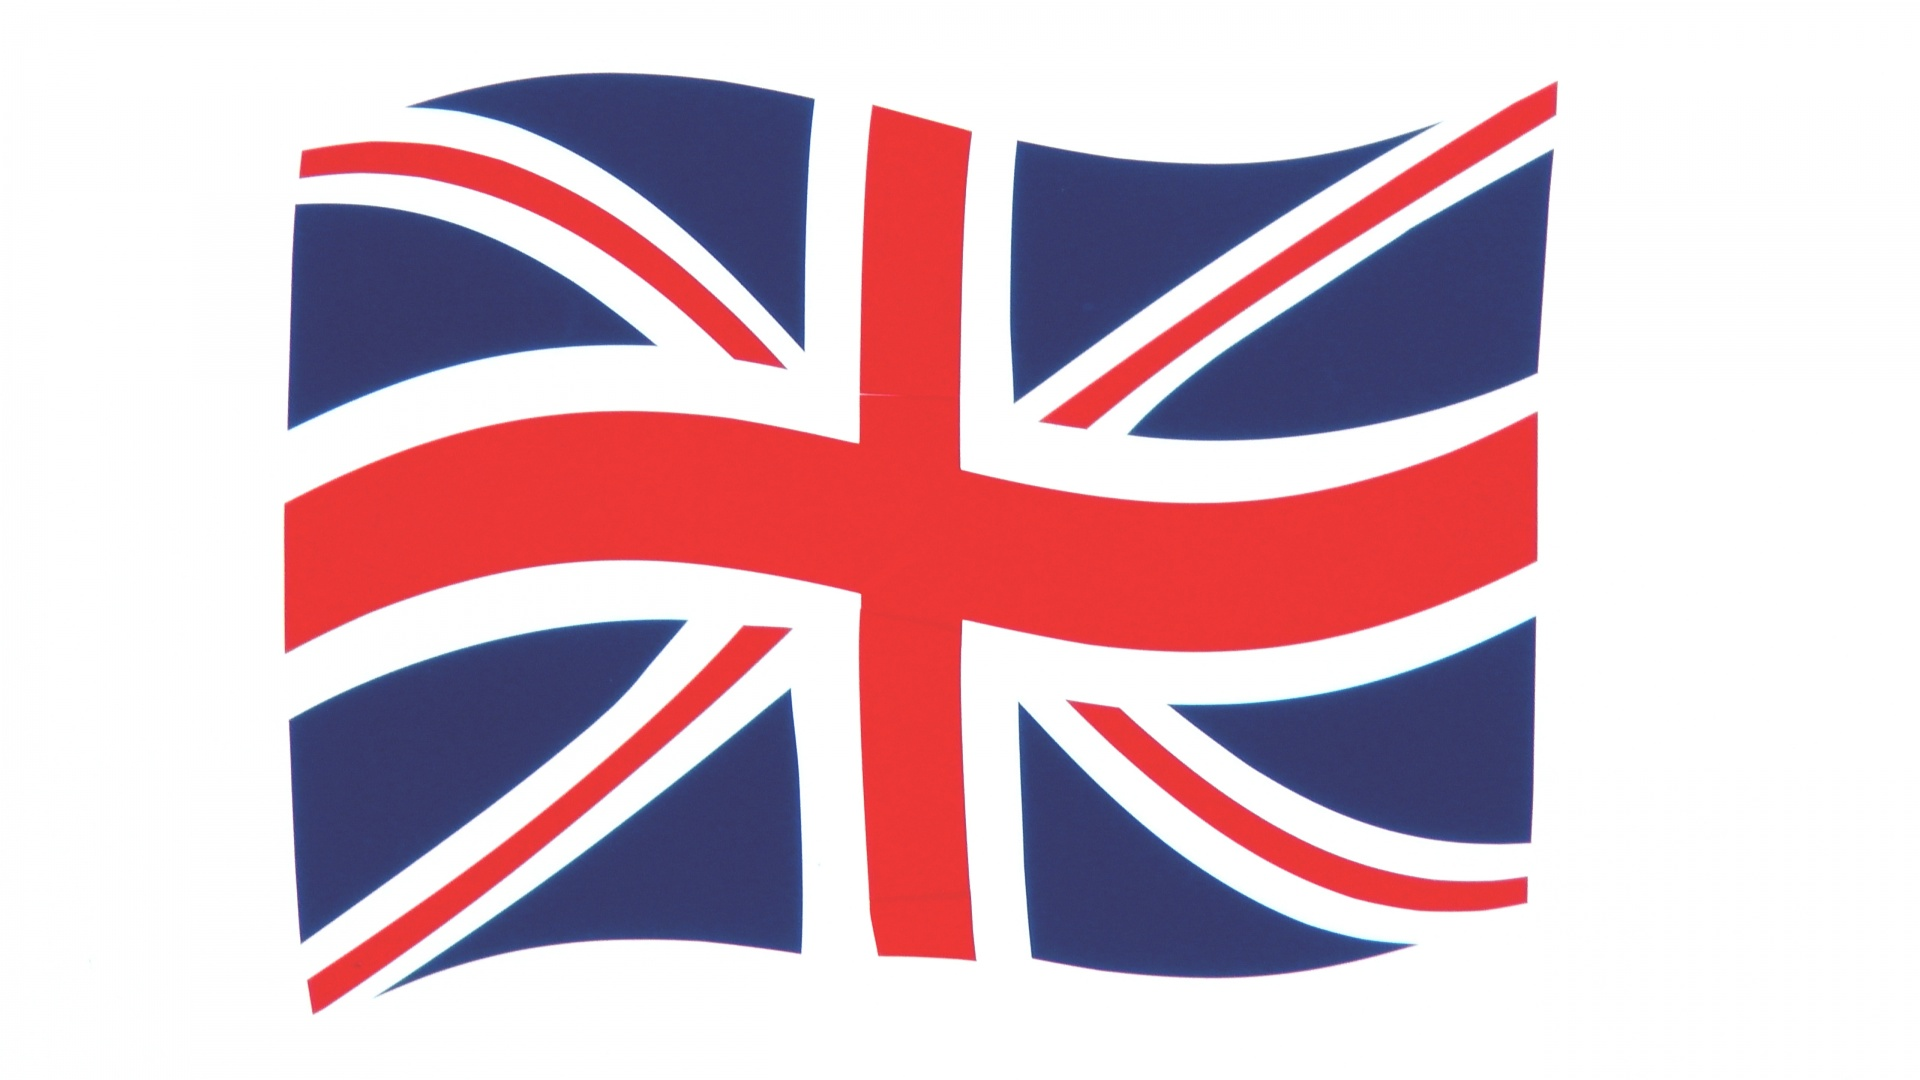 Union Jack clipart british flag Union Domain Union Kingdom Jack